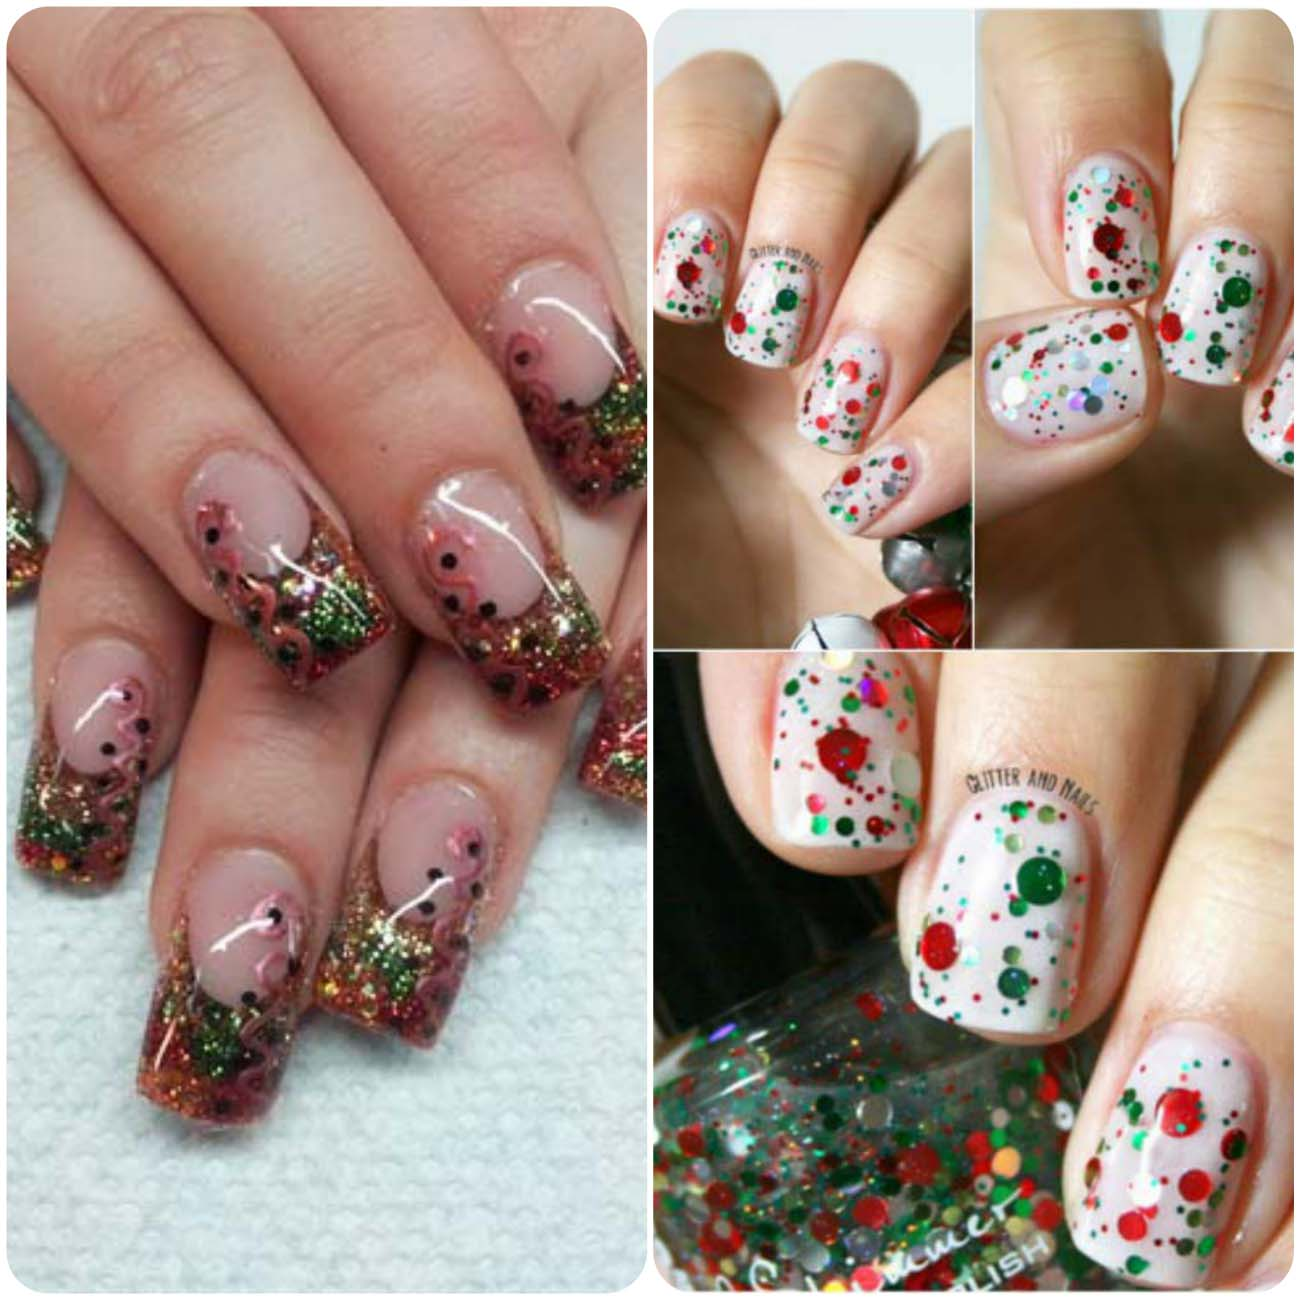 Charistmas Winter Nail art designs (9)_Fotor_Collage